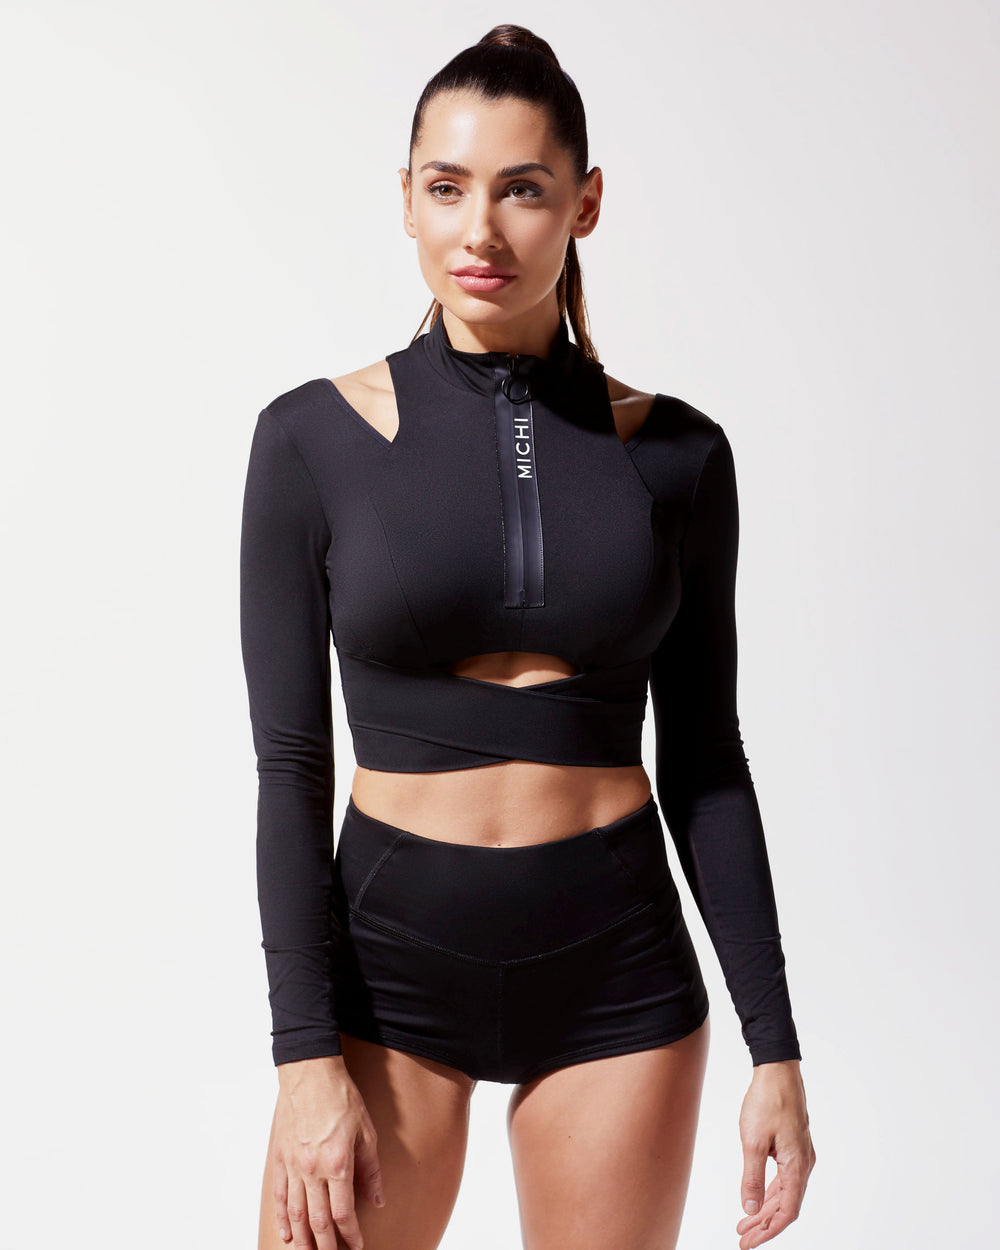 Freedive Crop Top - Black